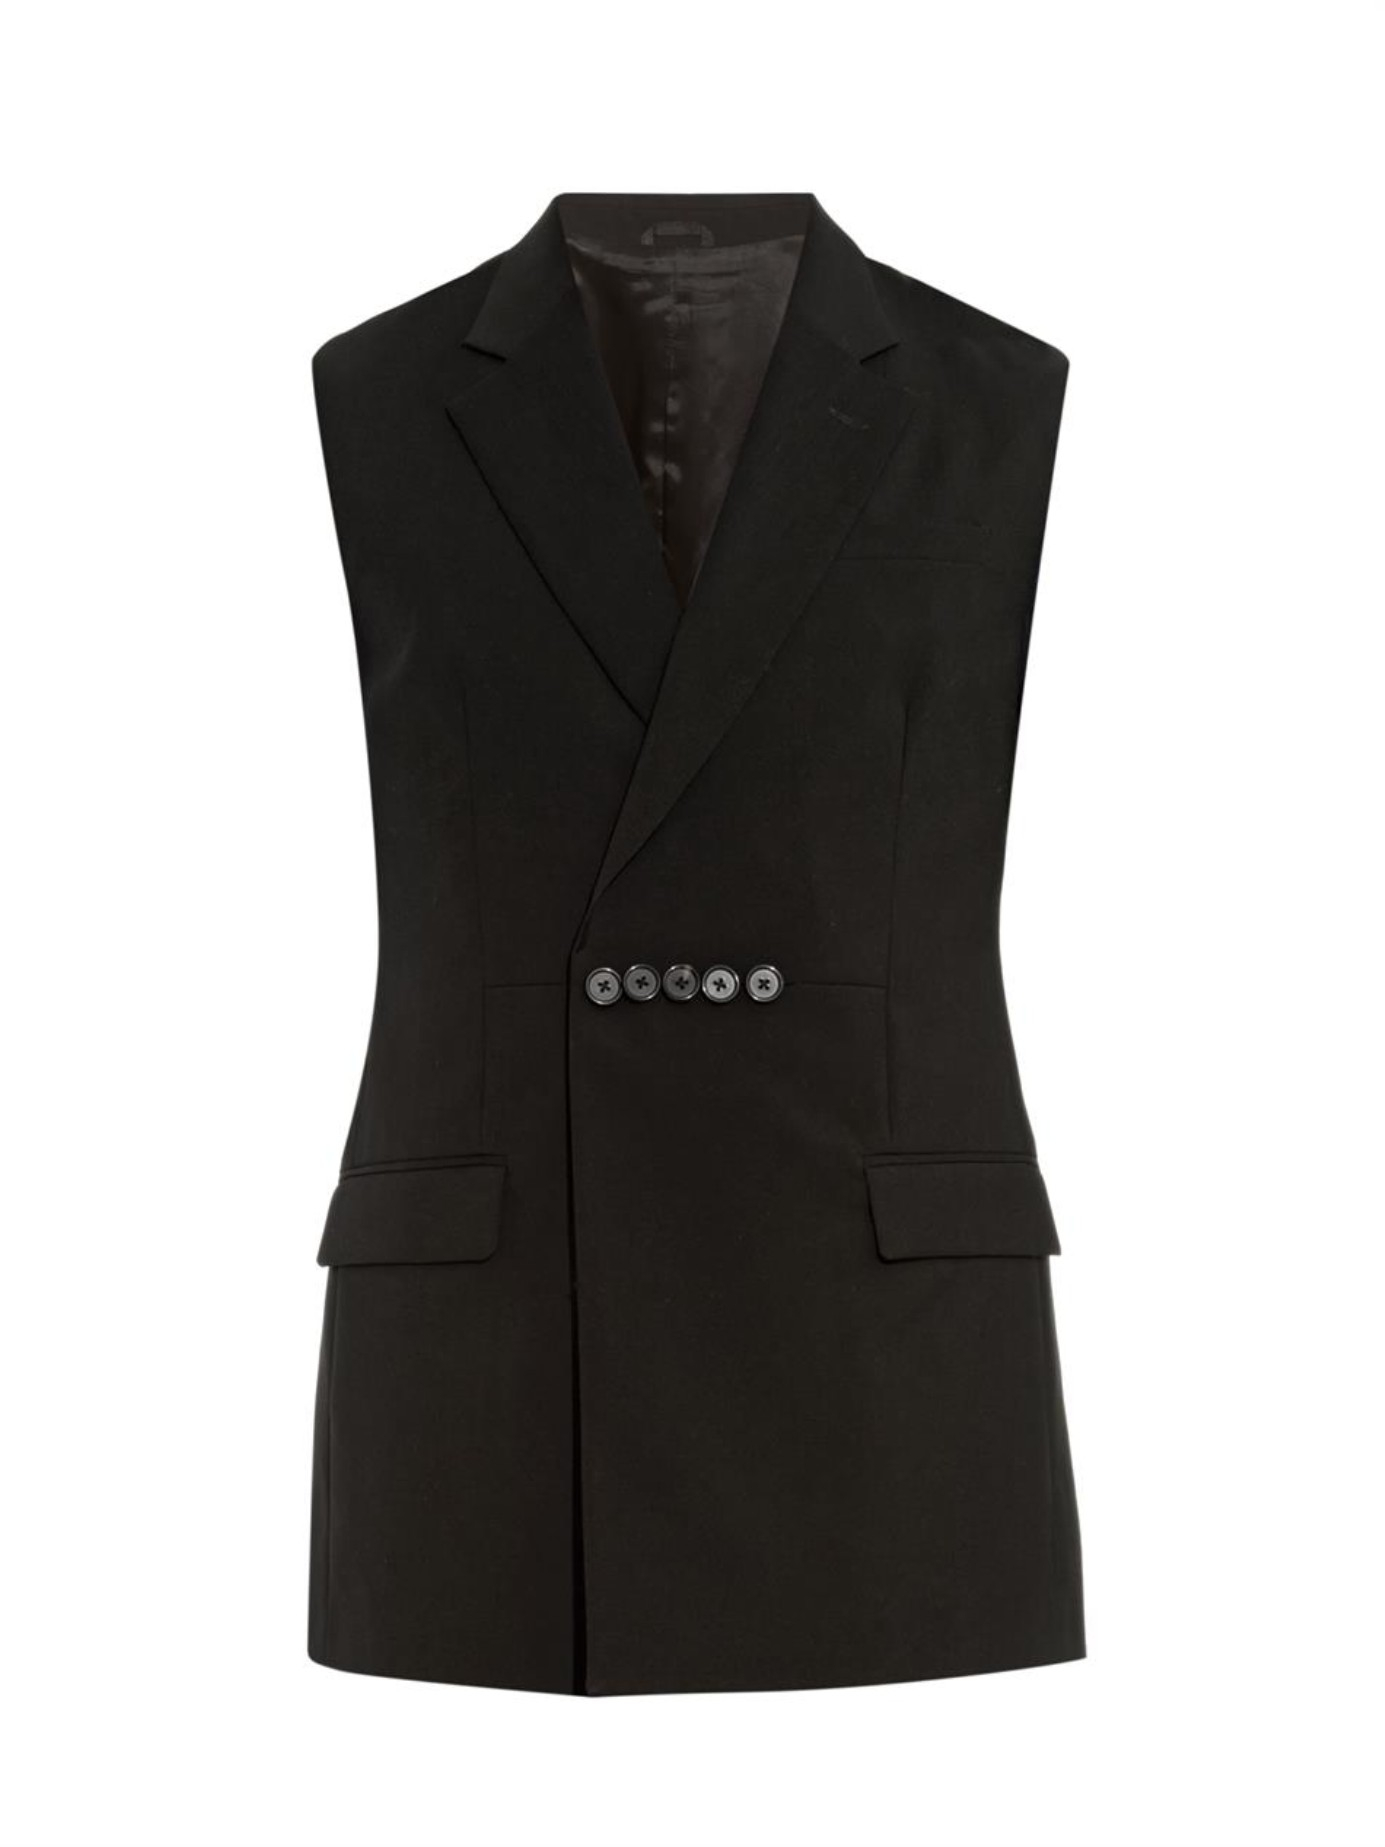 Shop for mens sleeveless vest jacket online at Target. Free shipping on purchases over $35 and save 5% every day with your Target REDcard.